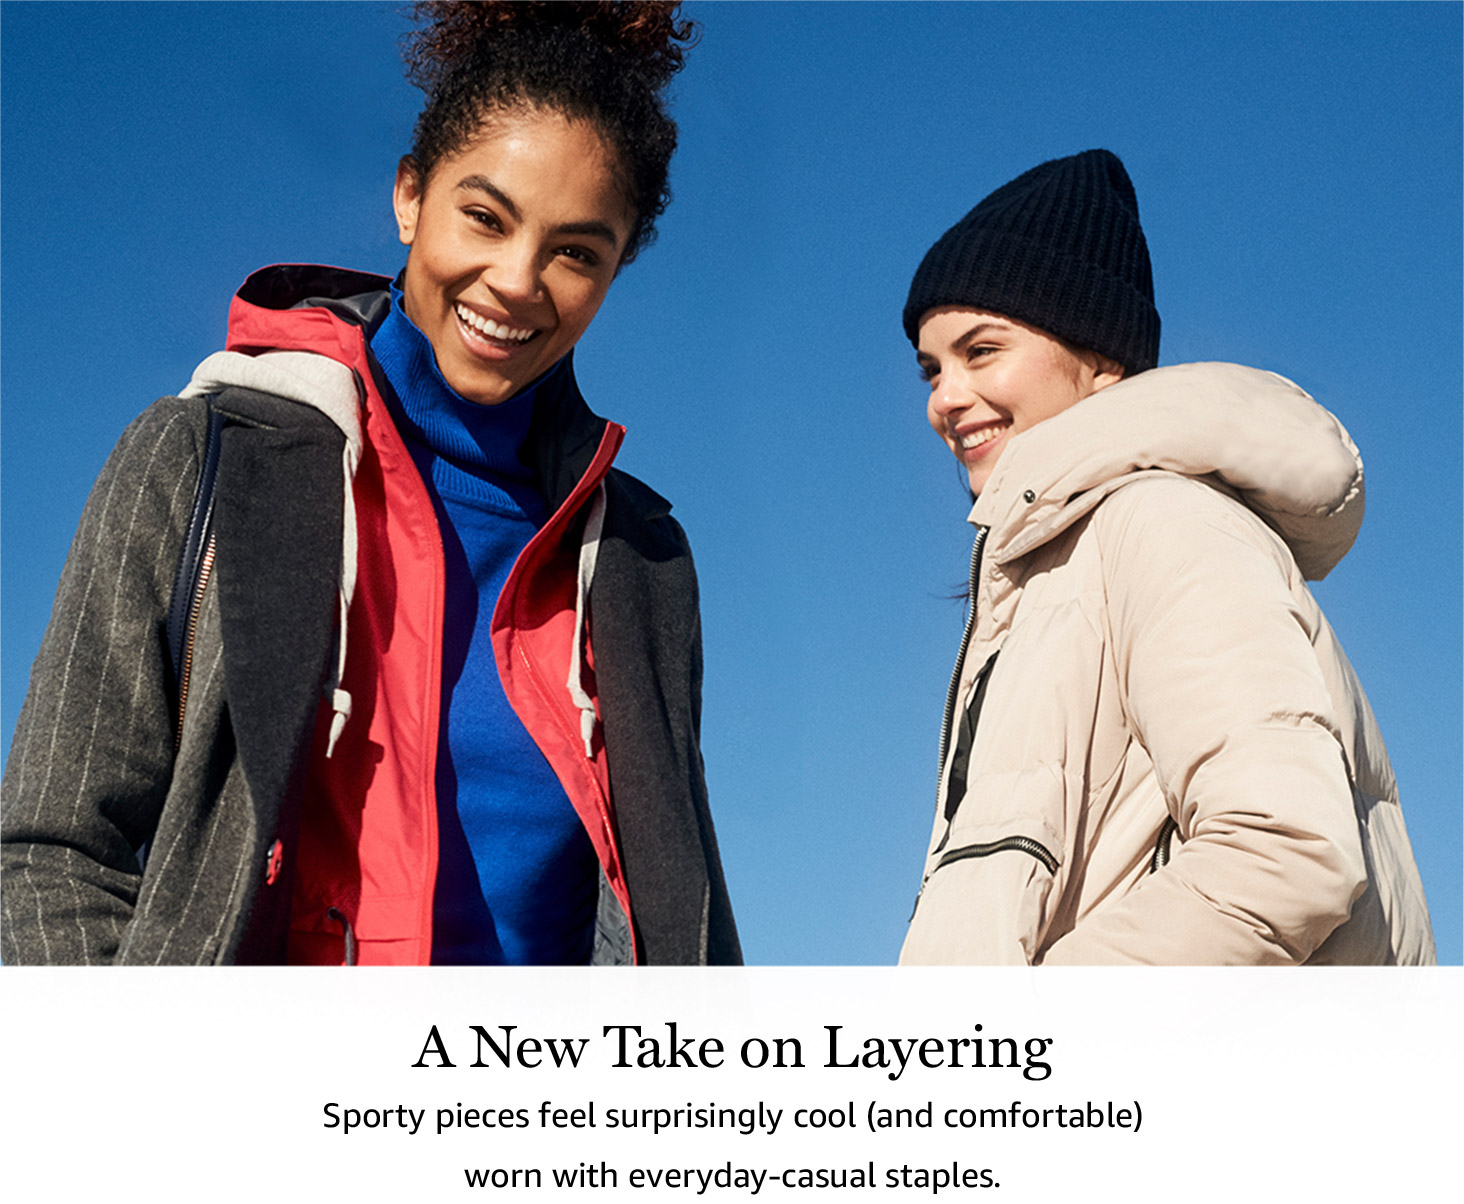 A New Take on Layering